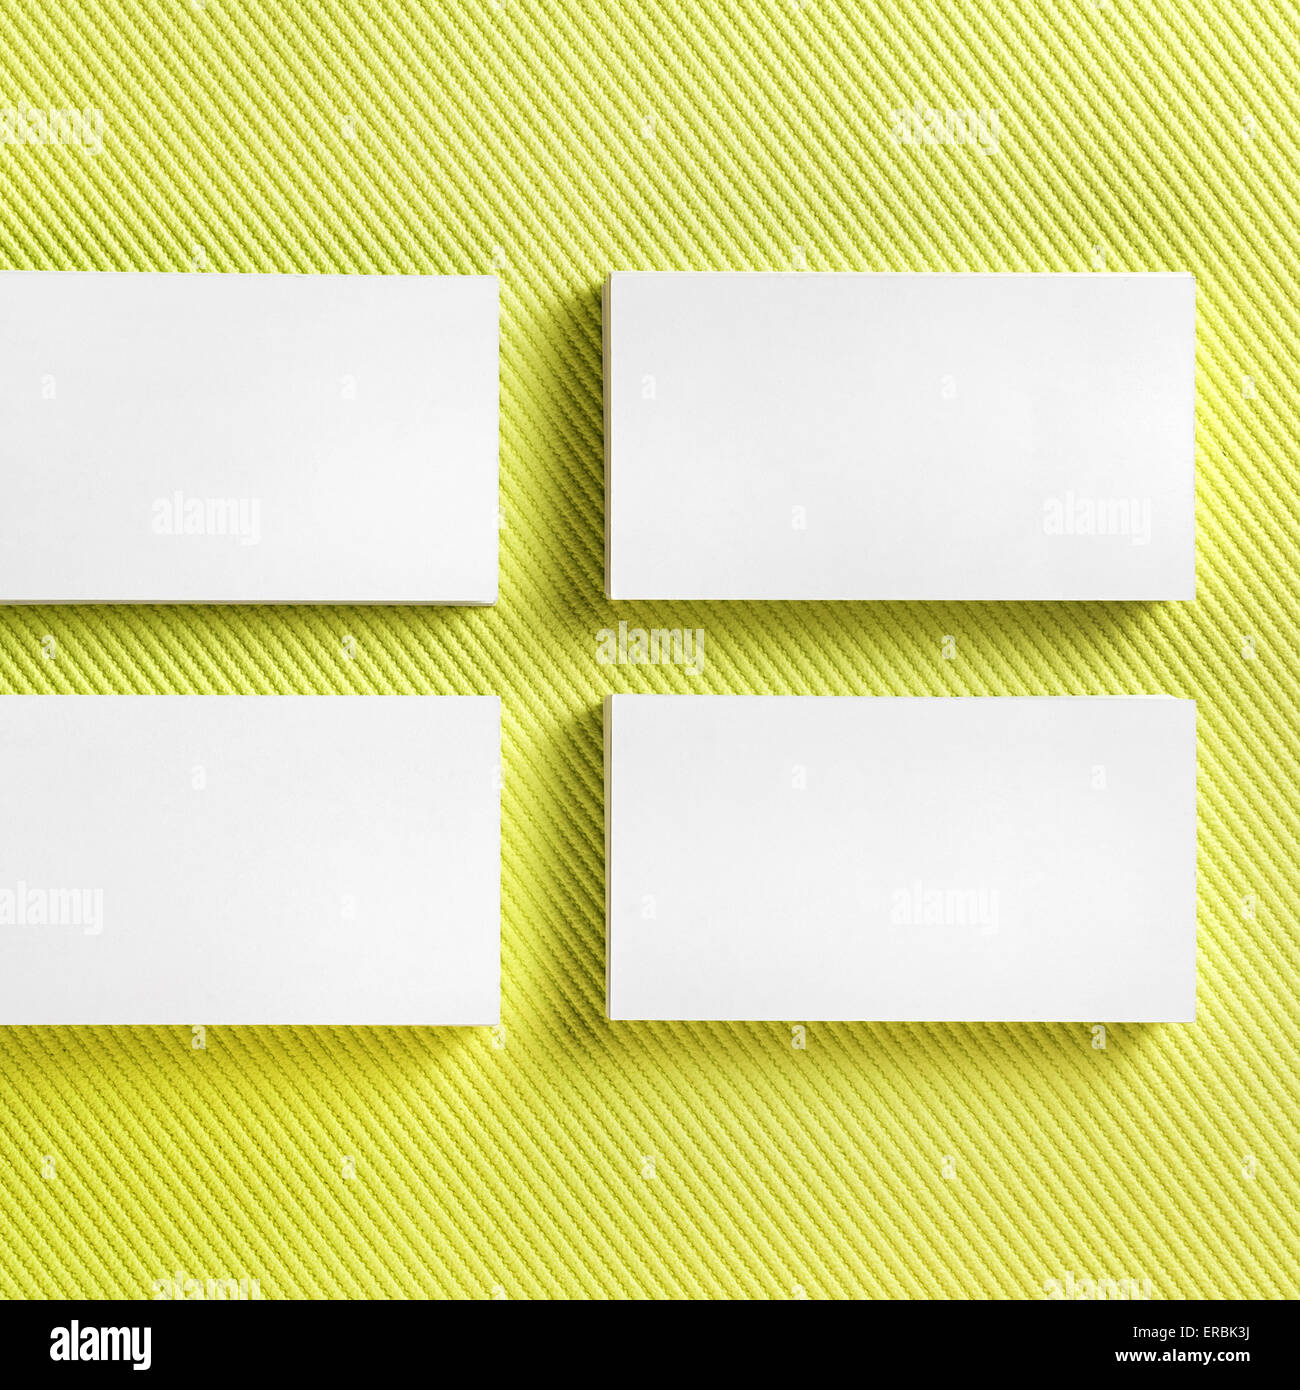 Photo of blank business cards on green background. Template for ID ...